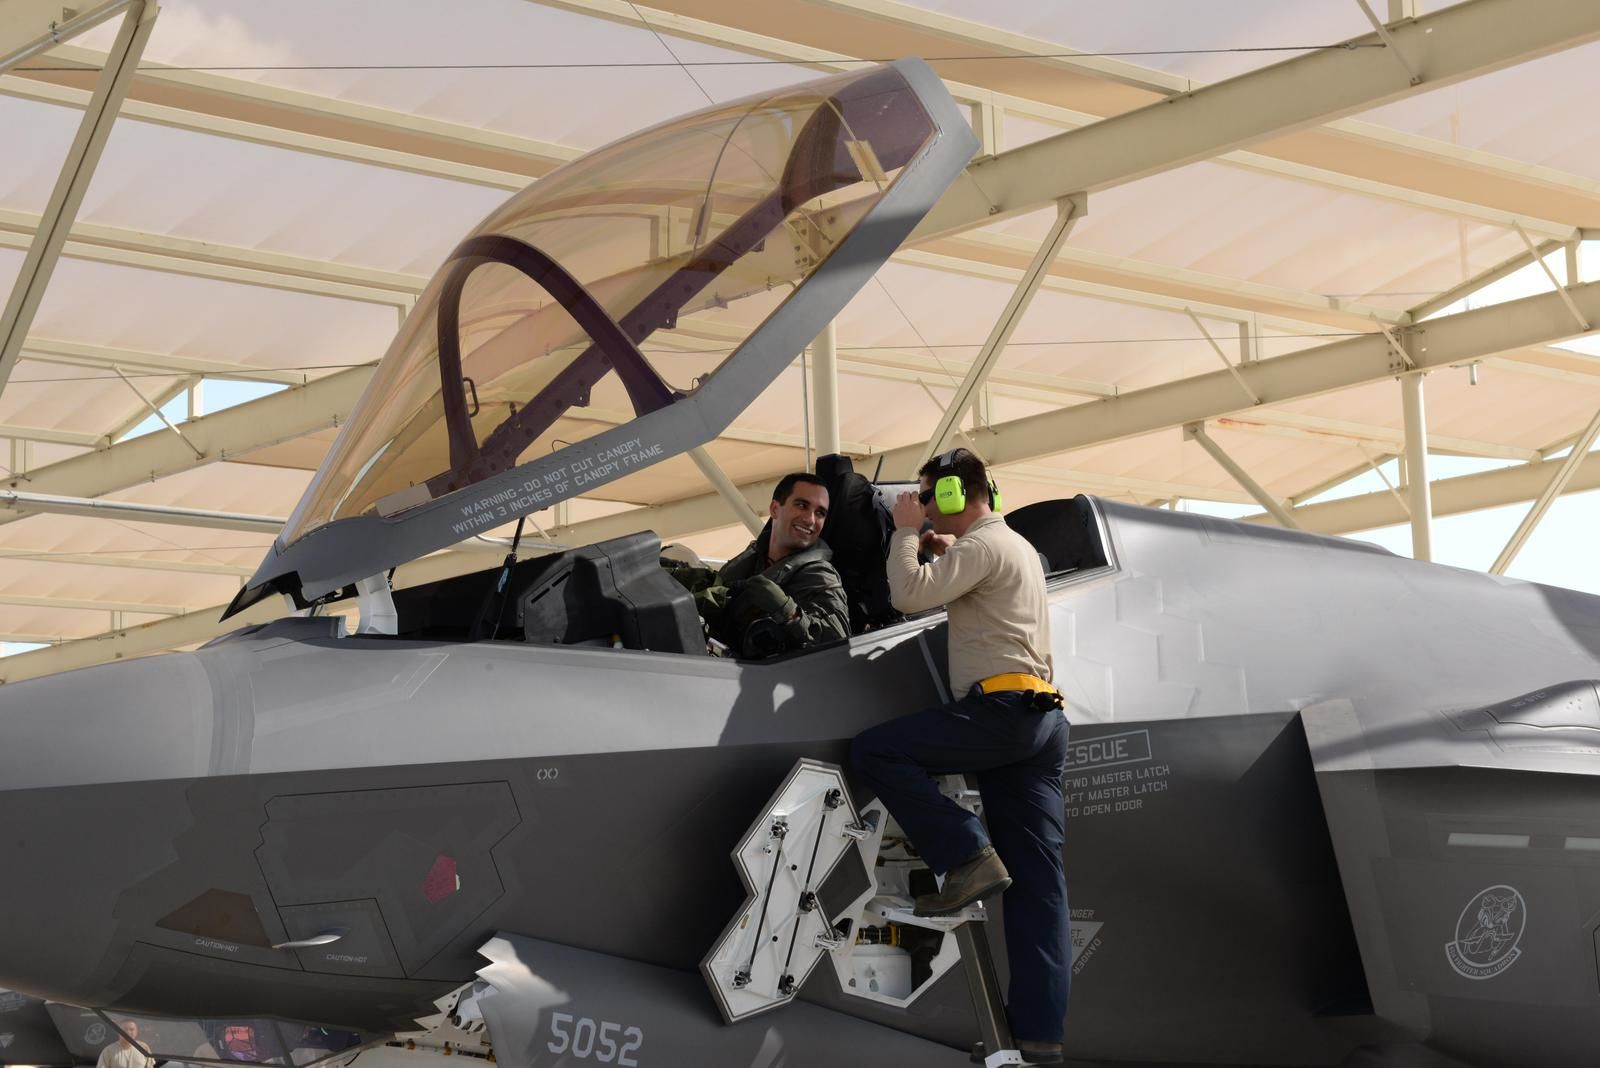 F-35: Italians First Mission Highlights Partnerships